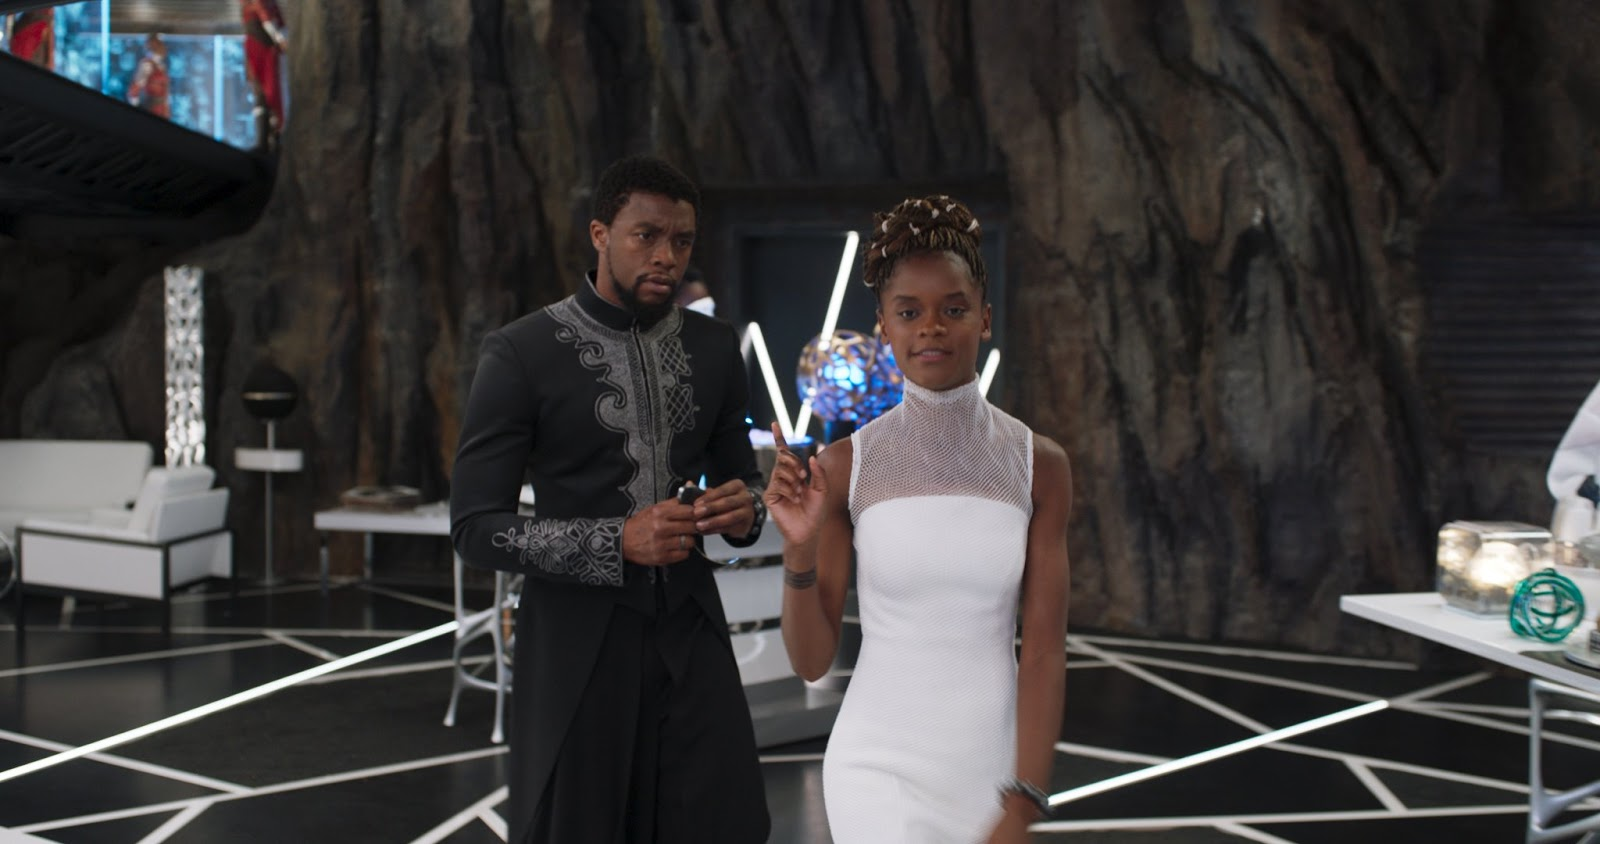 Black Panther 2: Is Shuri Going To Be The Next Black Panther? Chadwick Boseman died at 43